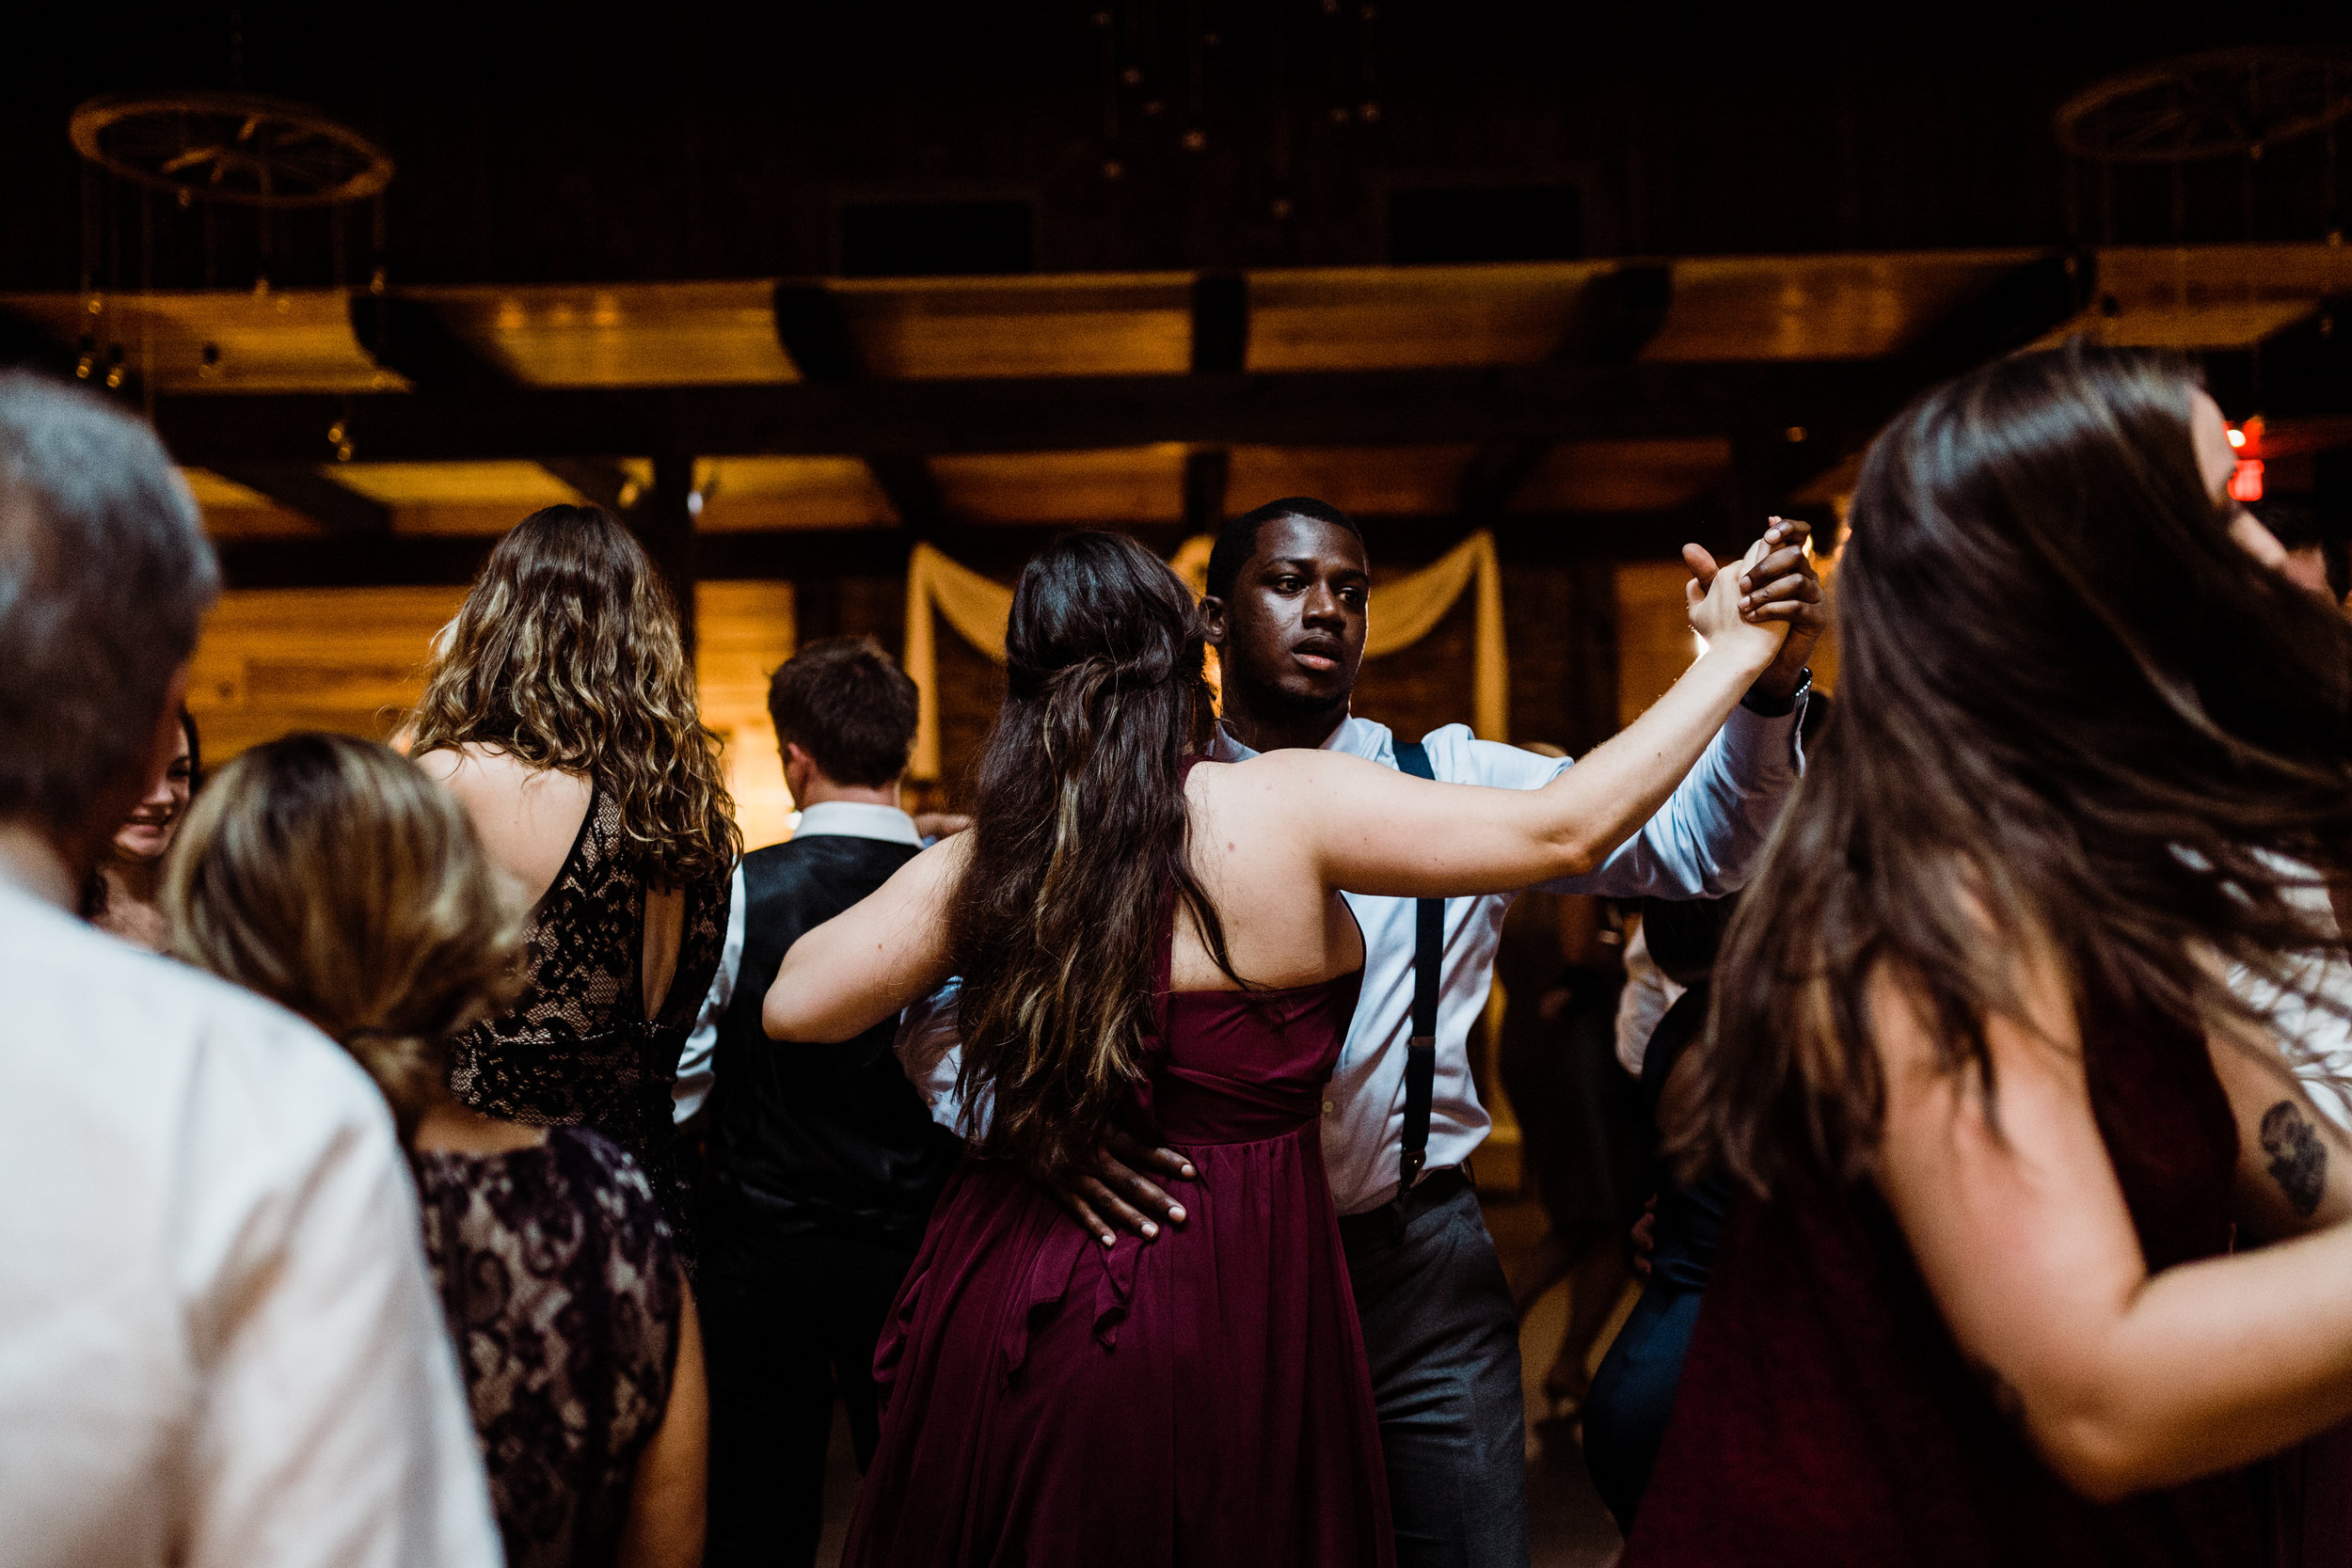 2017.10.08 Zach and Ashley Courson Wedding Club Lake Plantation (961 of 1079).jpg